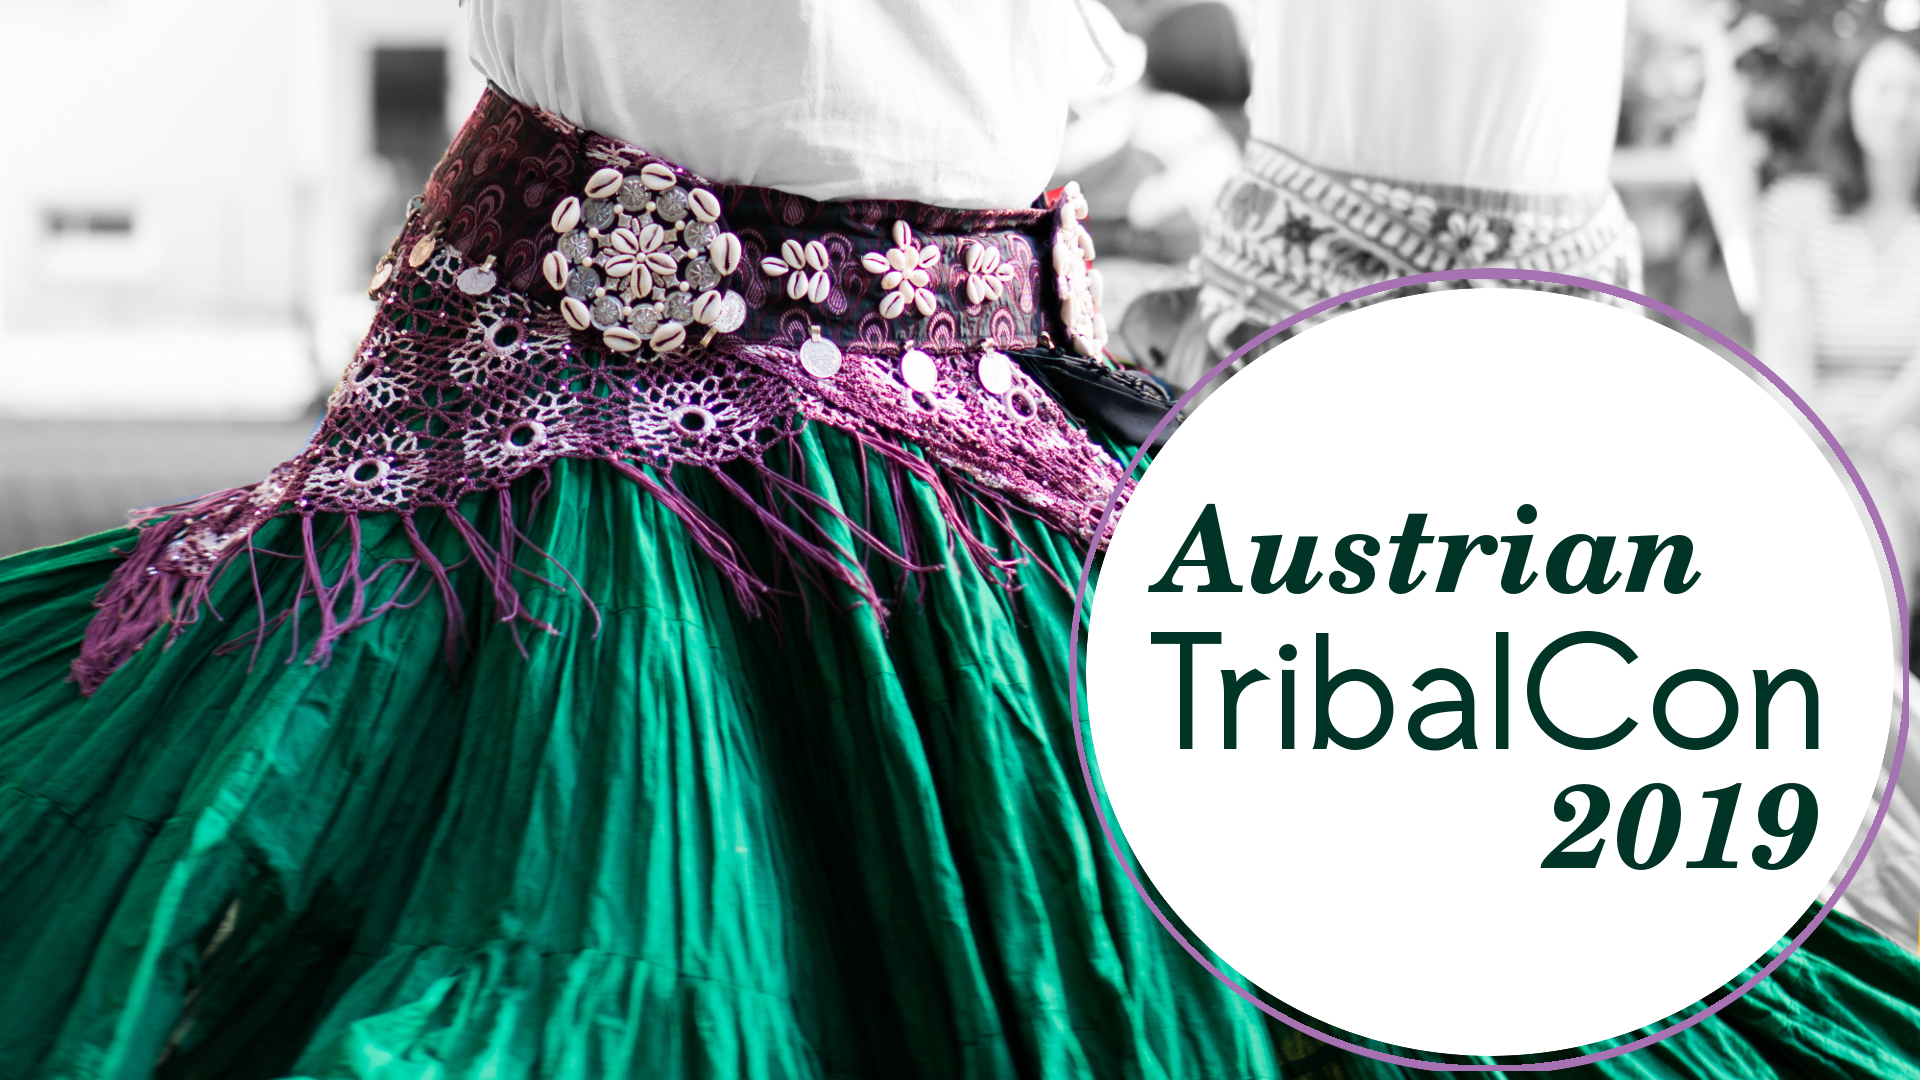 Austrian Tribal Convention 2019 - Österreichsche Tribal Convention 2019